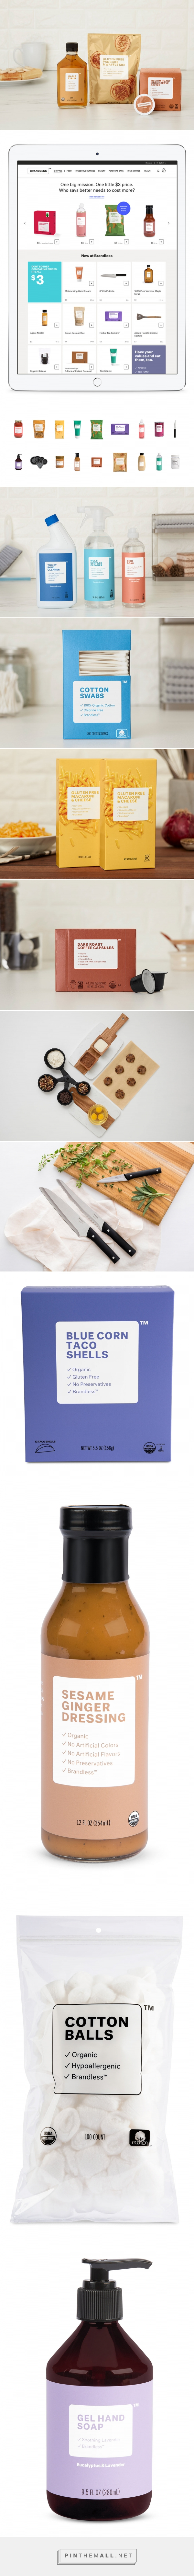 How Brandless Keeps it Simple — The Dieline | Packaging & Branding Design & Innovation News... - a grouped images picture - Pin Them All